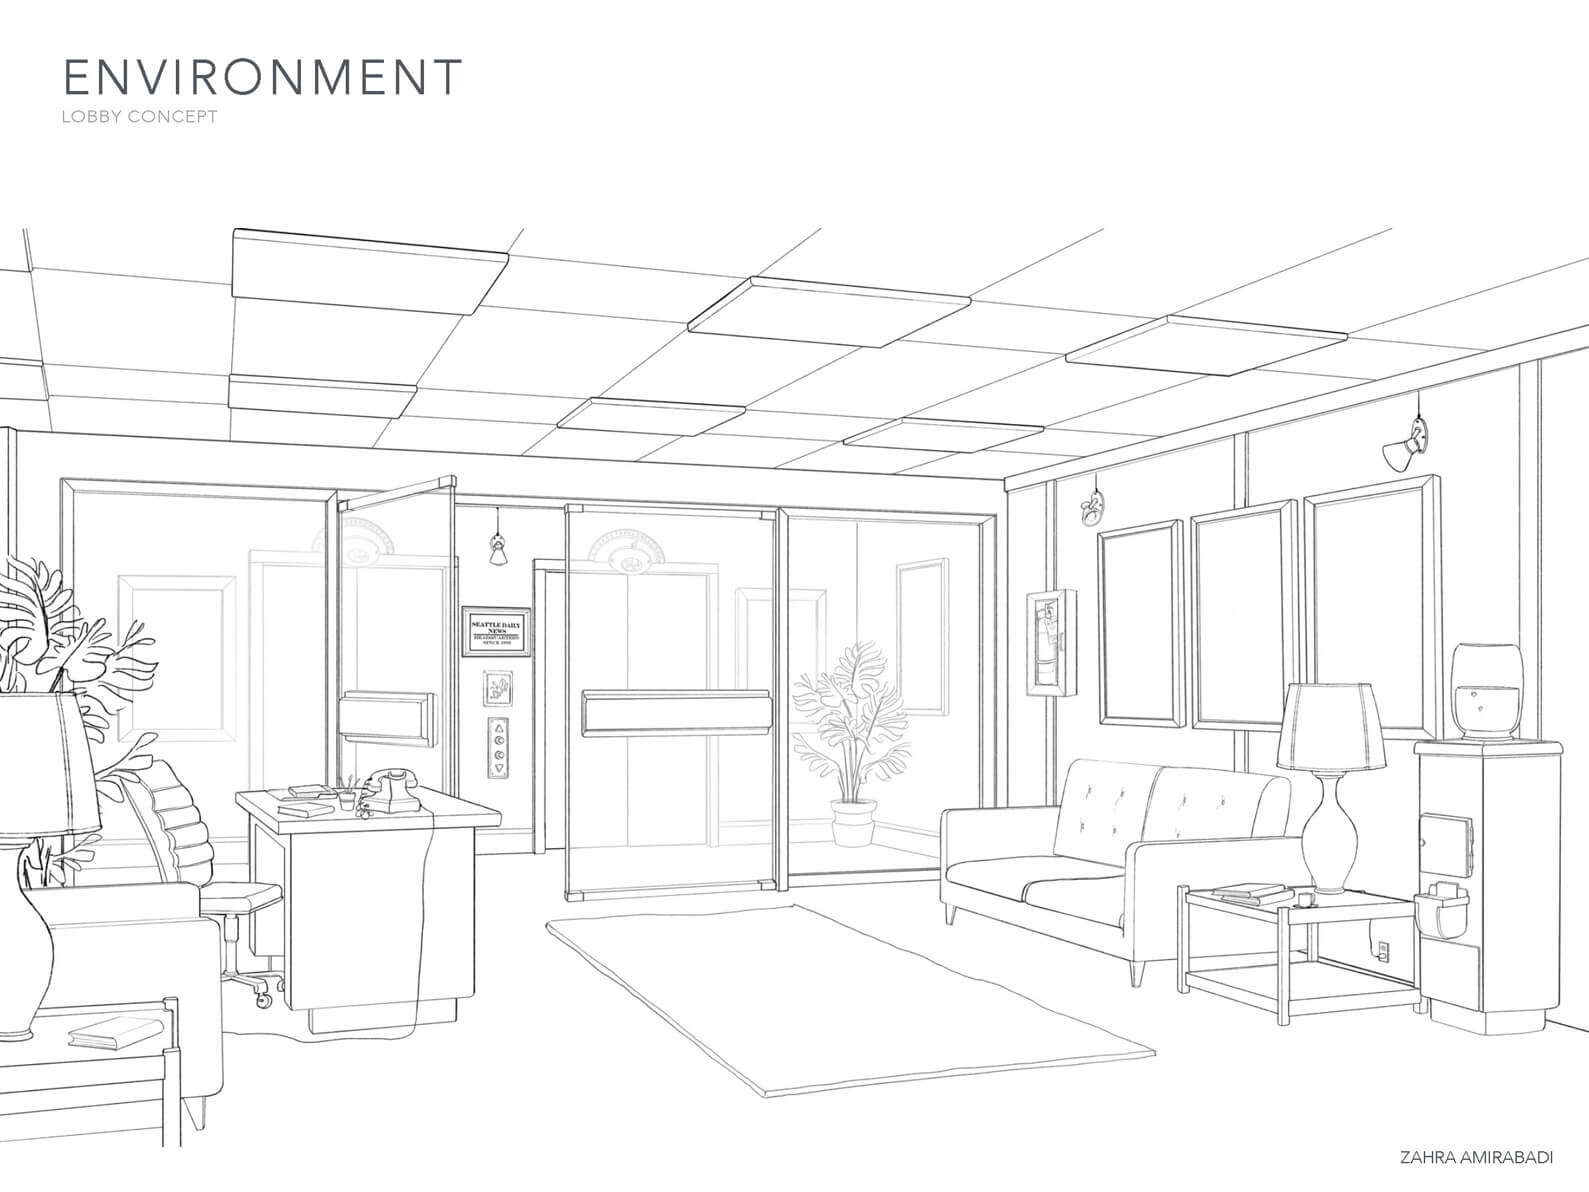 Black and white concept sketch of the Lobby environment from the short film Orientation Center for the Unseen.